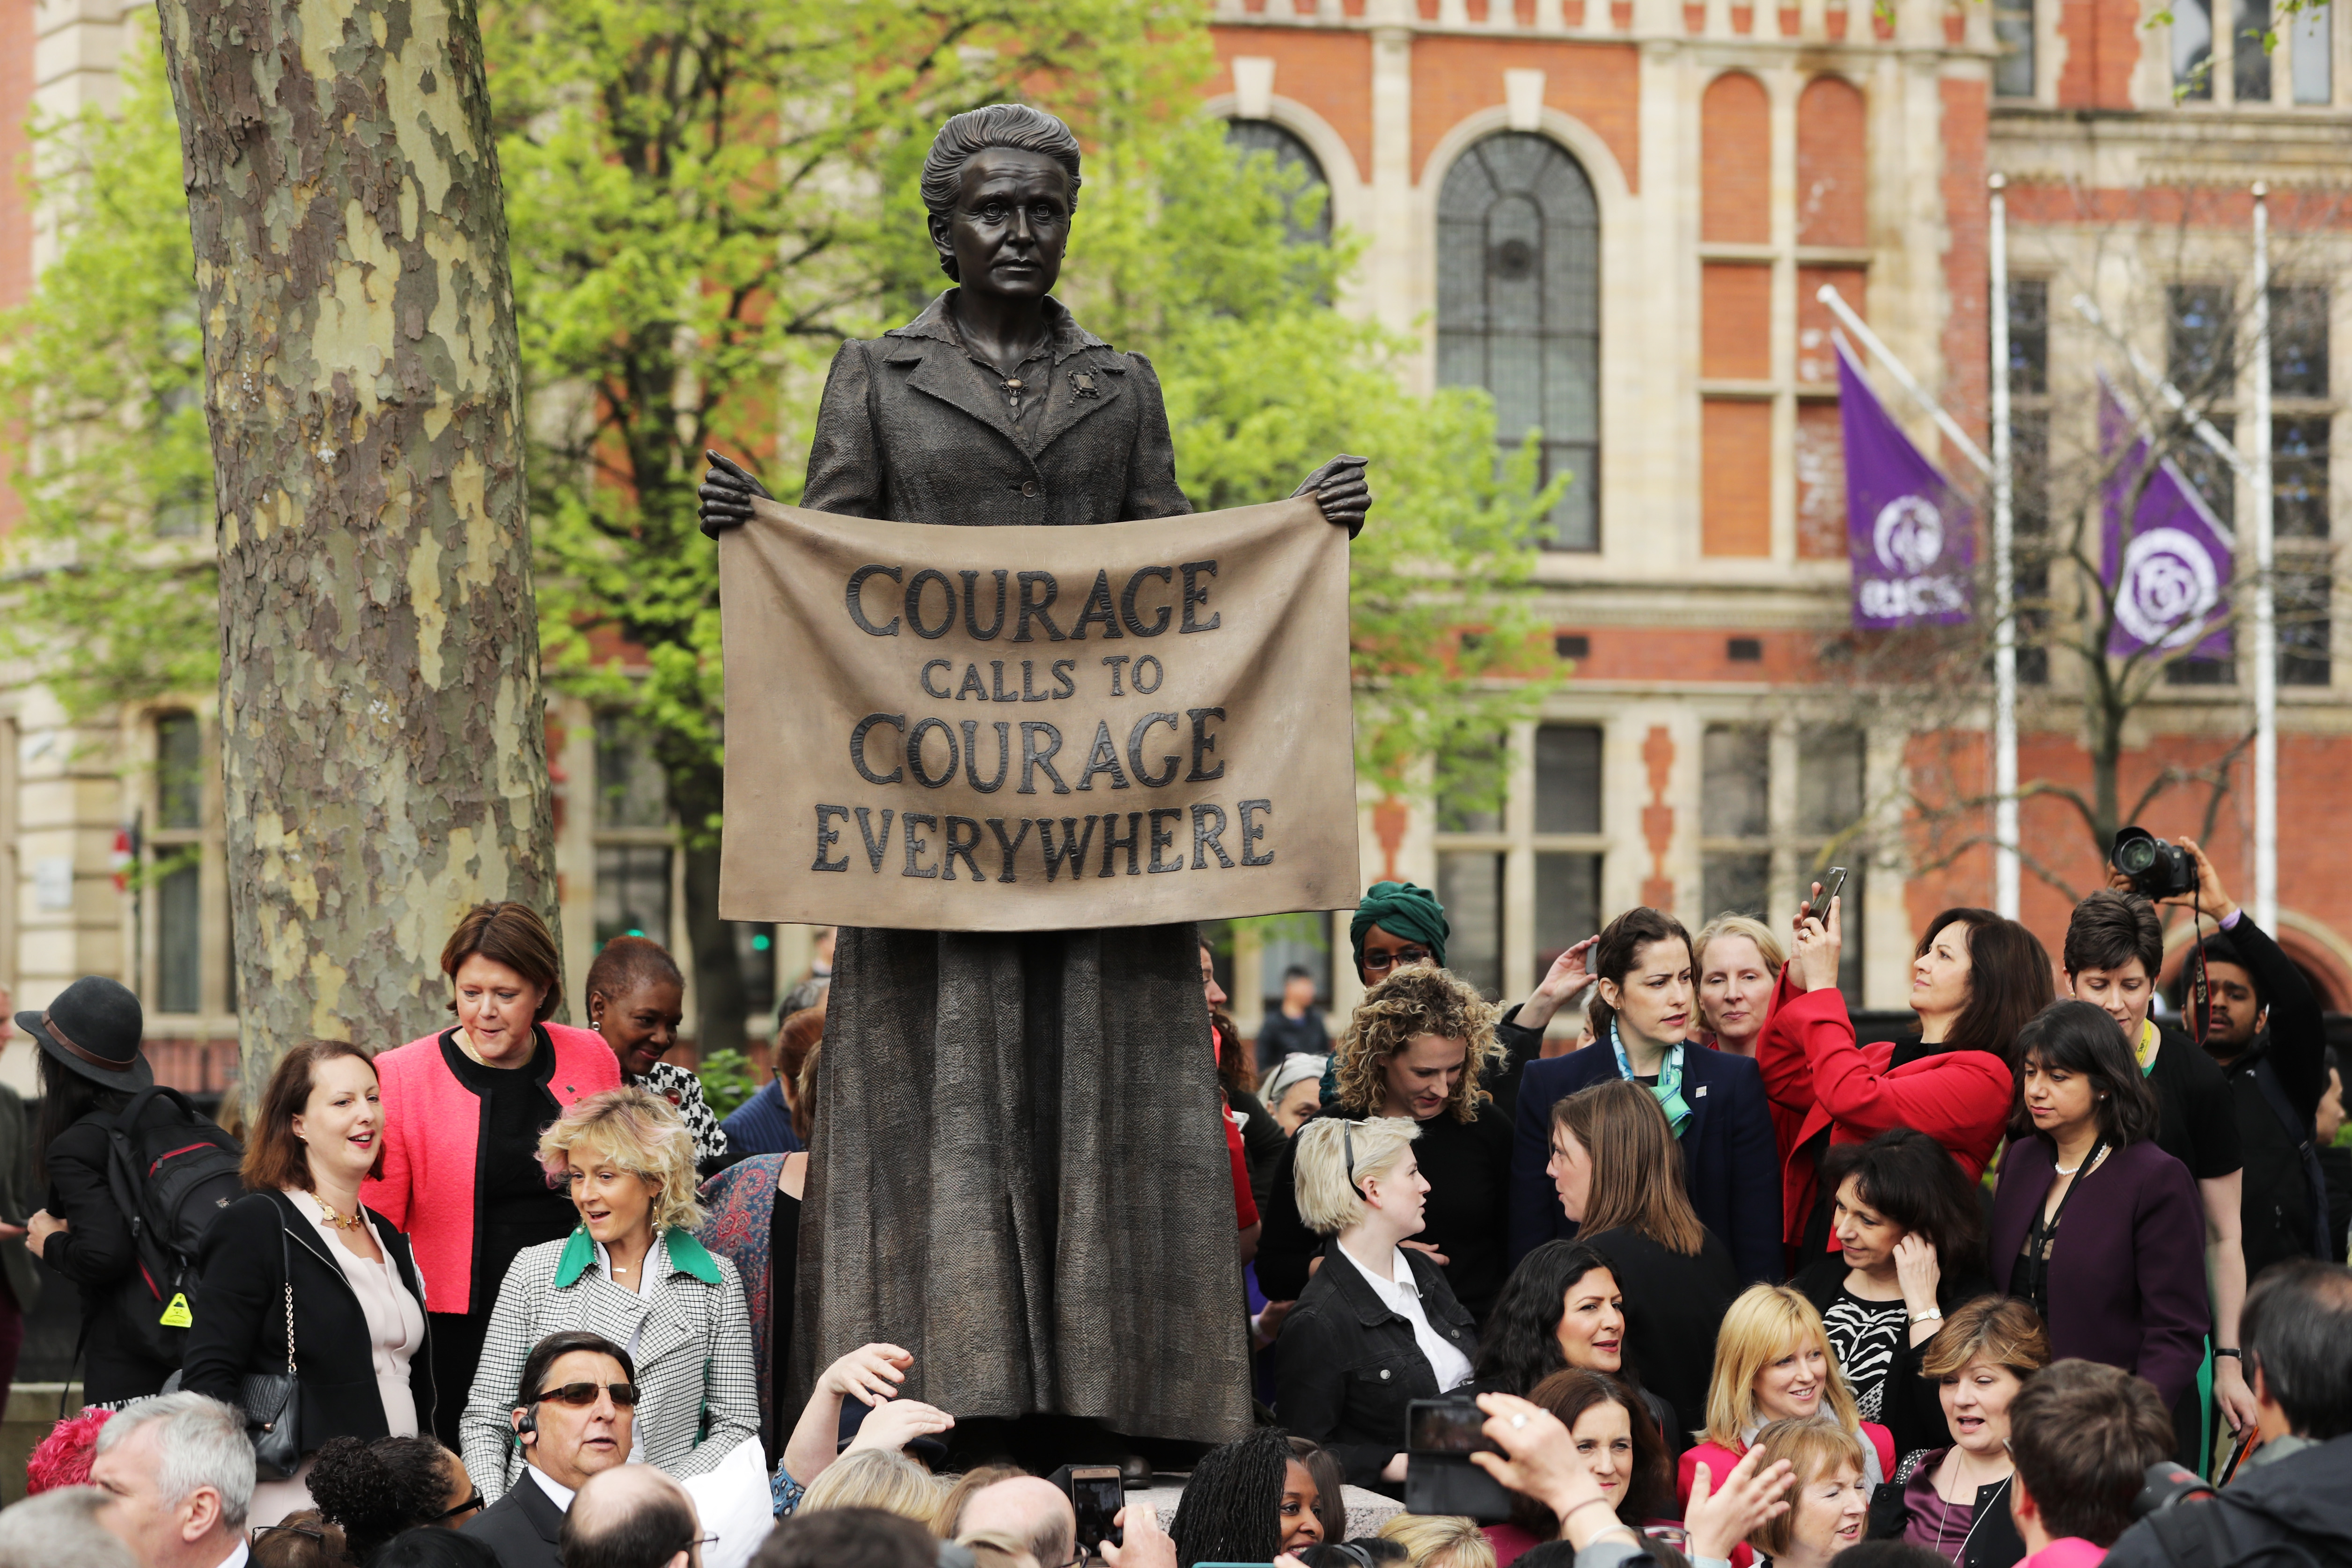 Crowd stands around news statue of Millicent Fawcett in Parliament Square in London